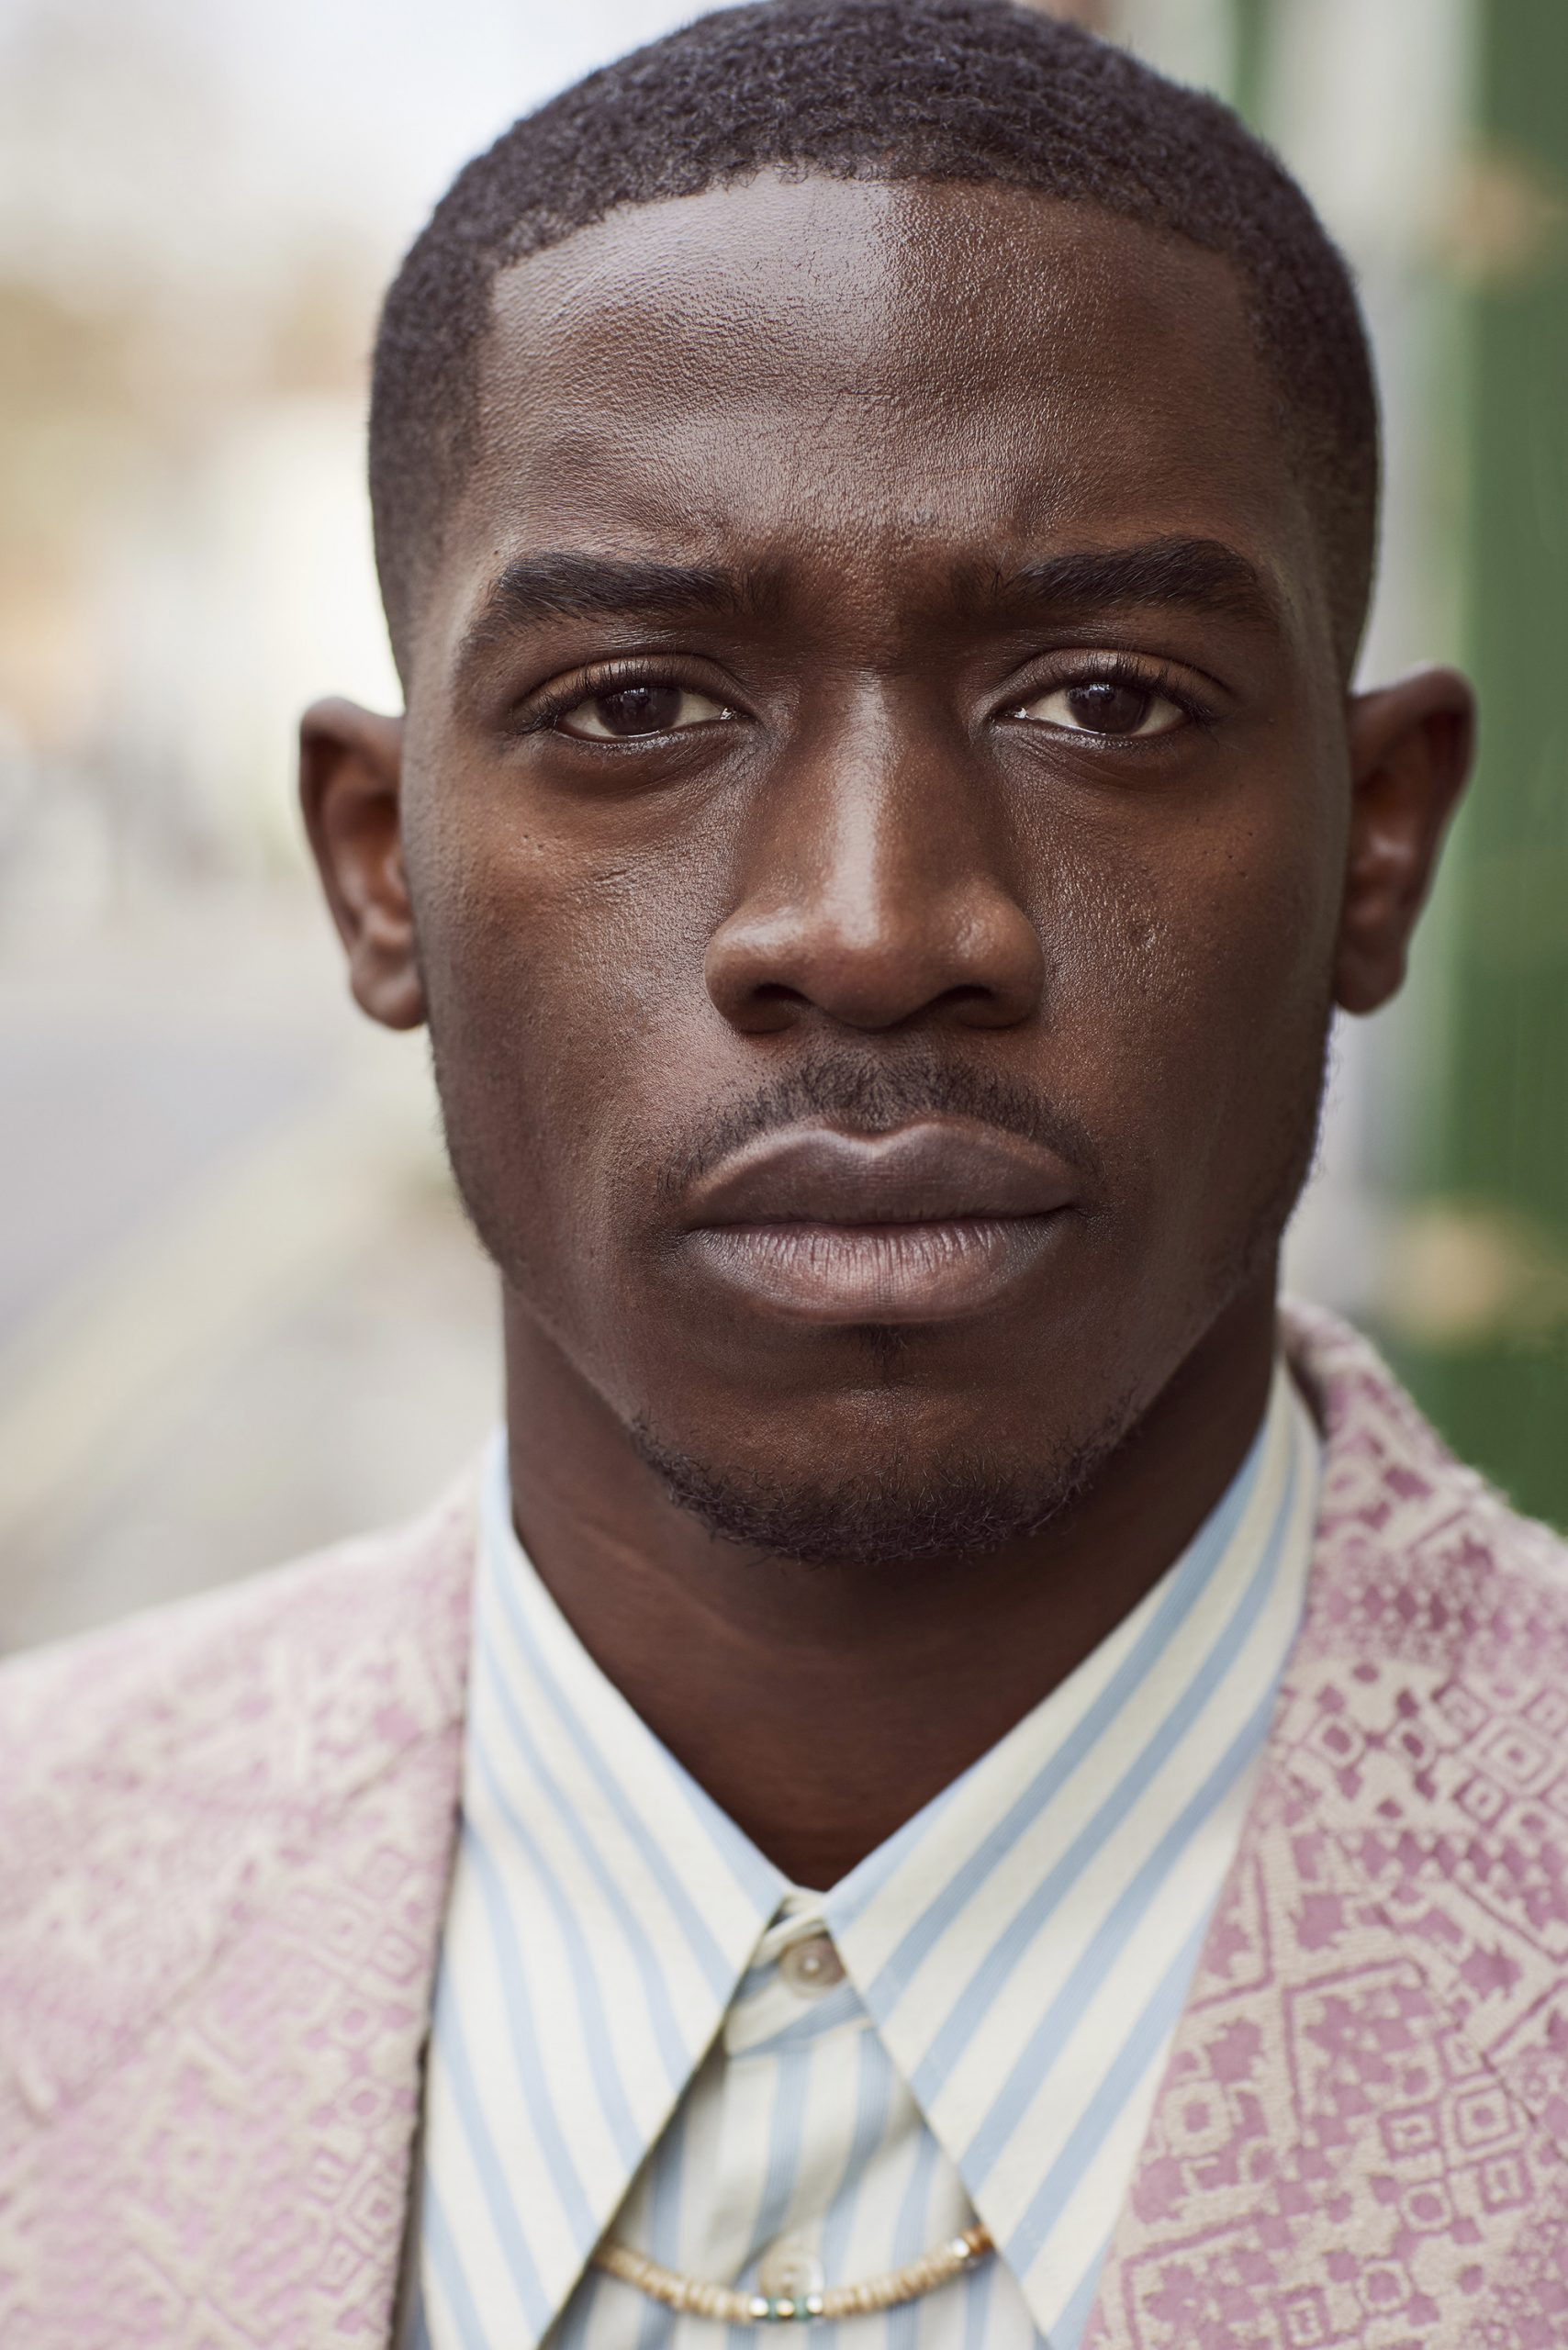 Damson Idris looking at the camera wearing a blue and white striped shirt